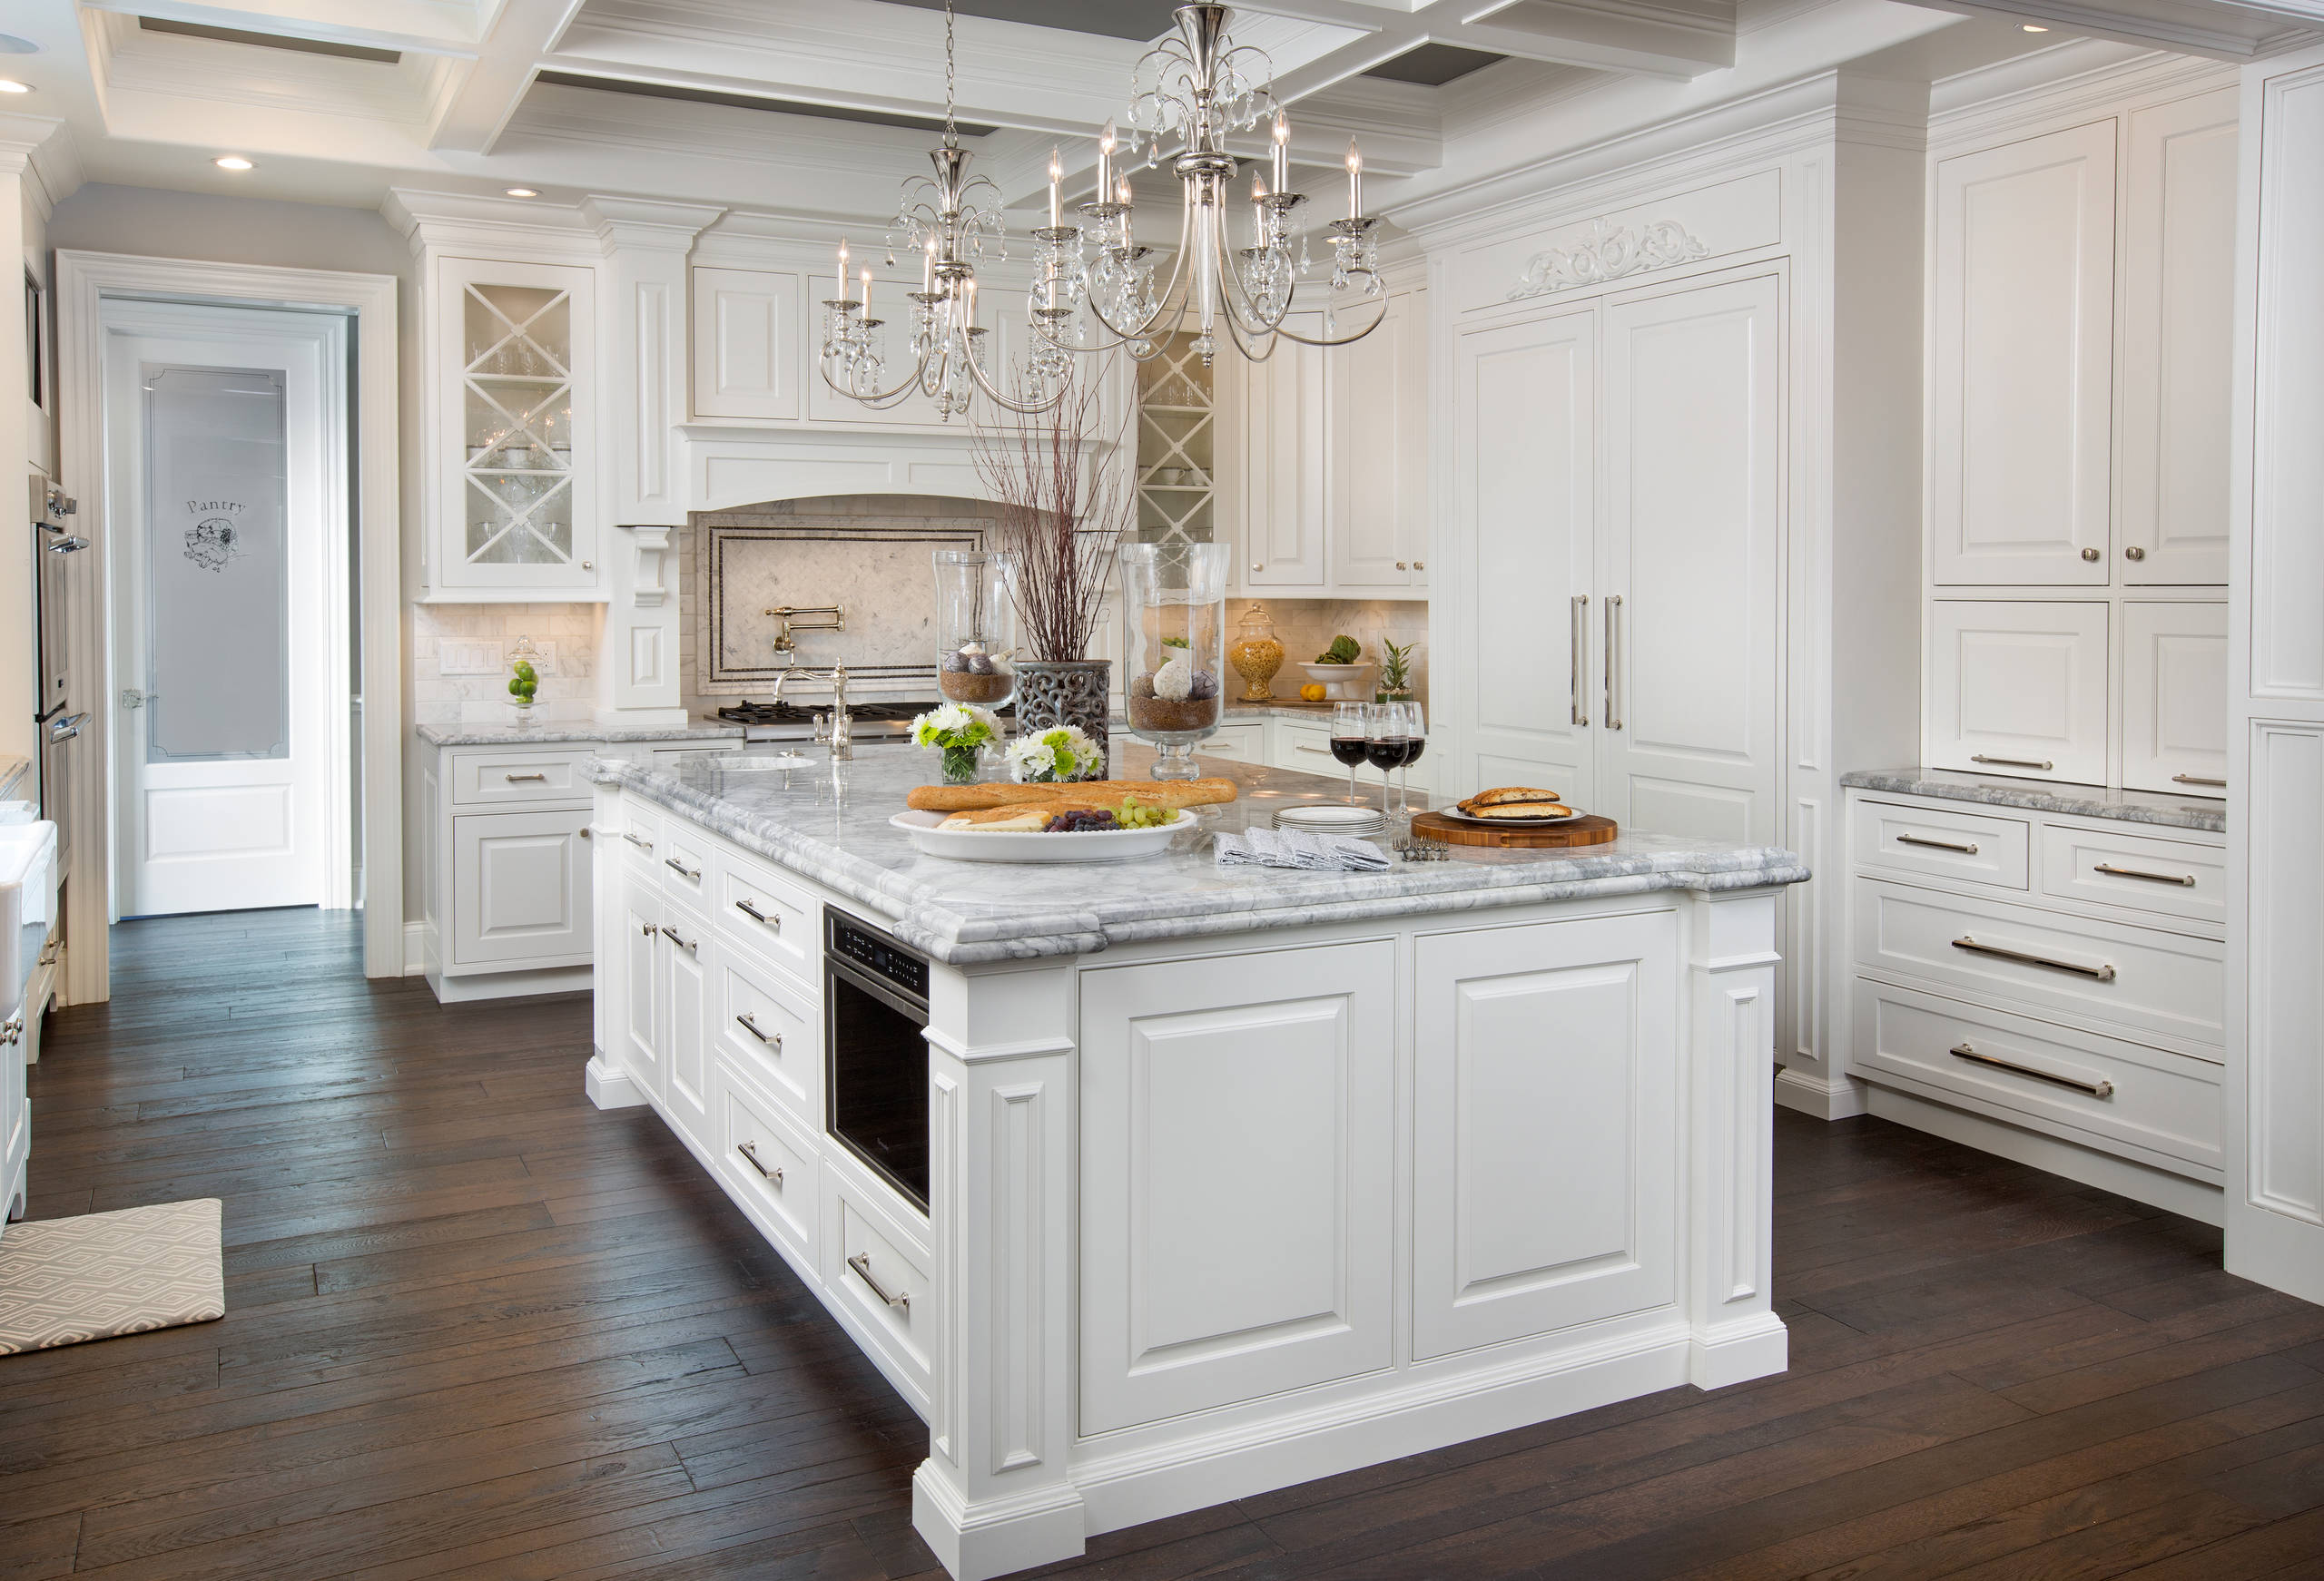 7 steps to decorating your dream kitchen make sure to our must have items 1508